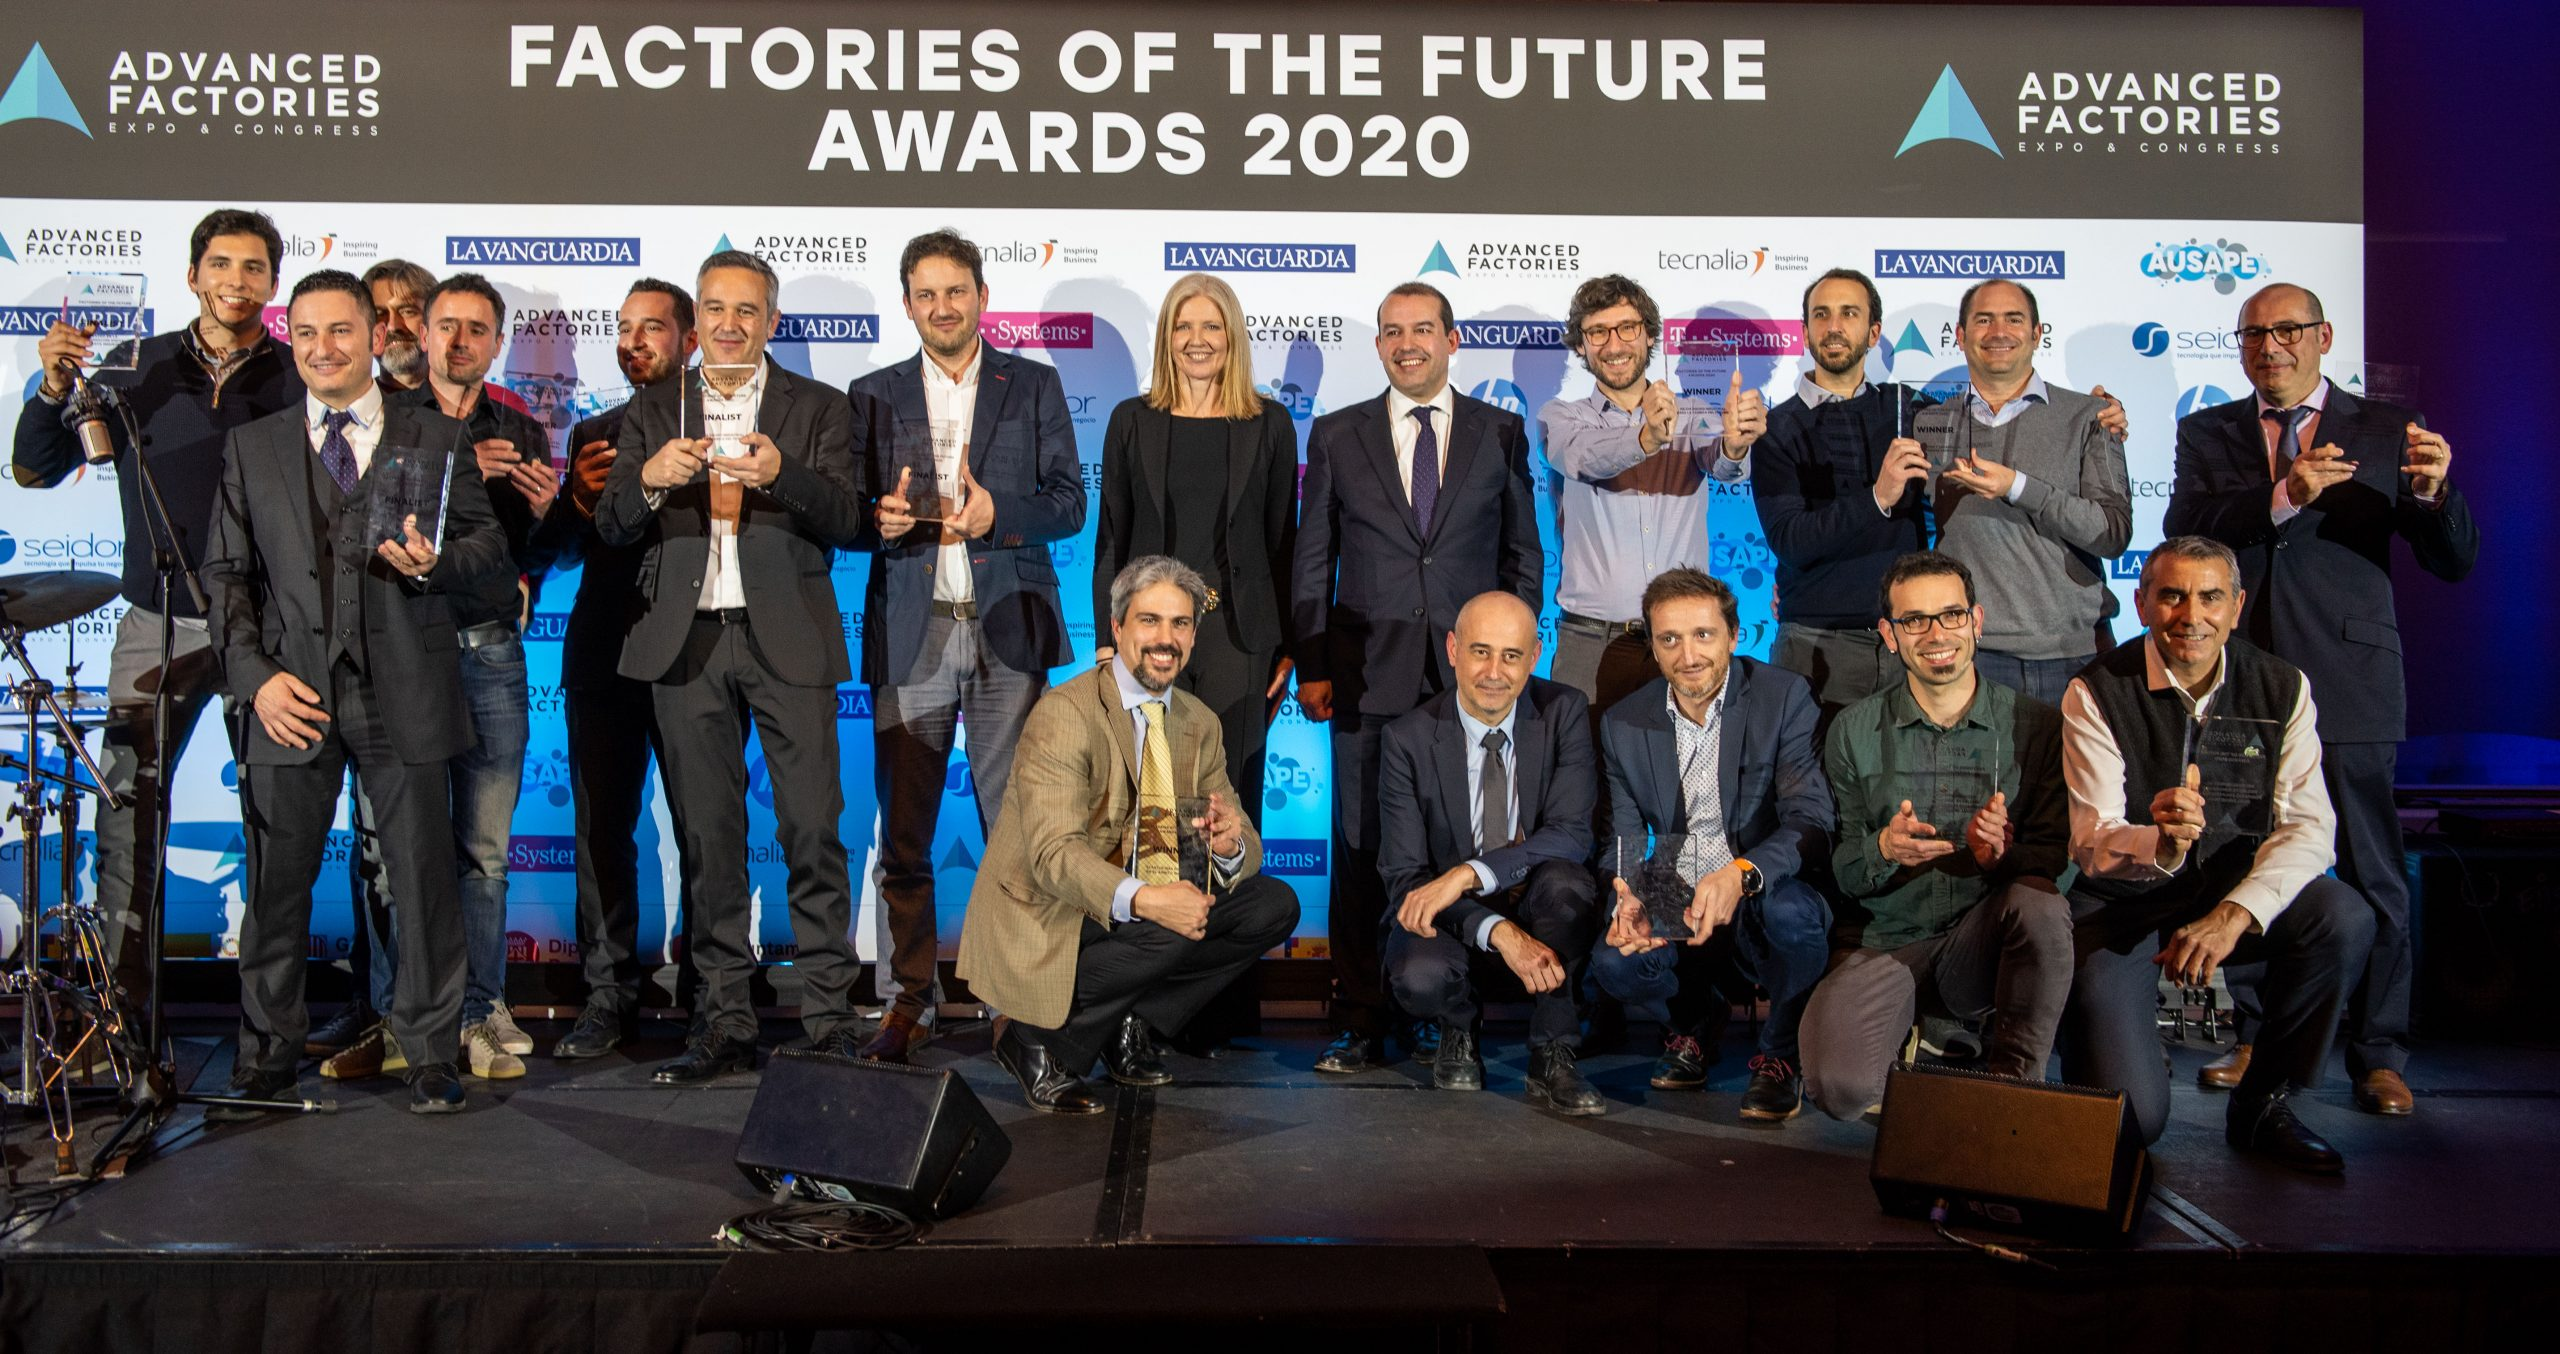 Gestamp y la fábrica Rossignol, ganadores de los Factories of the Future Awards 2020